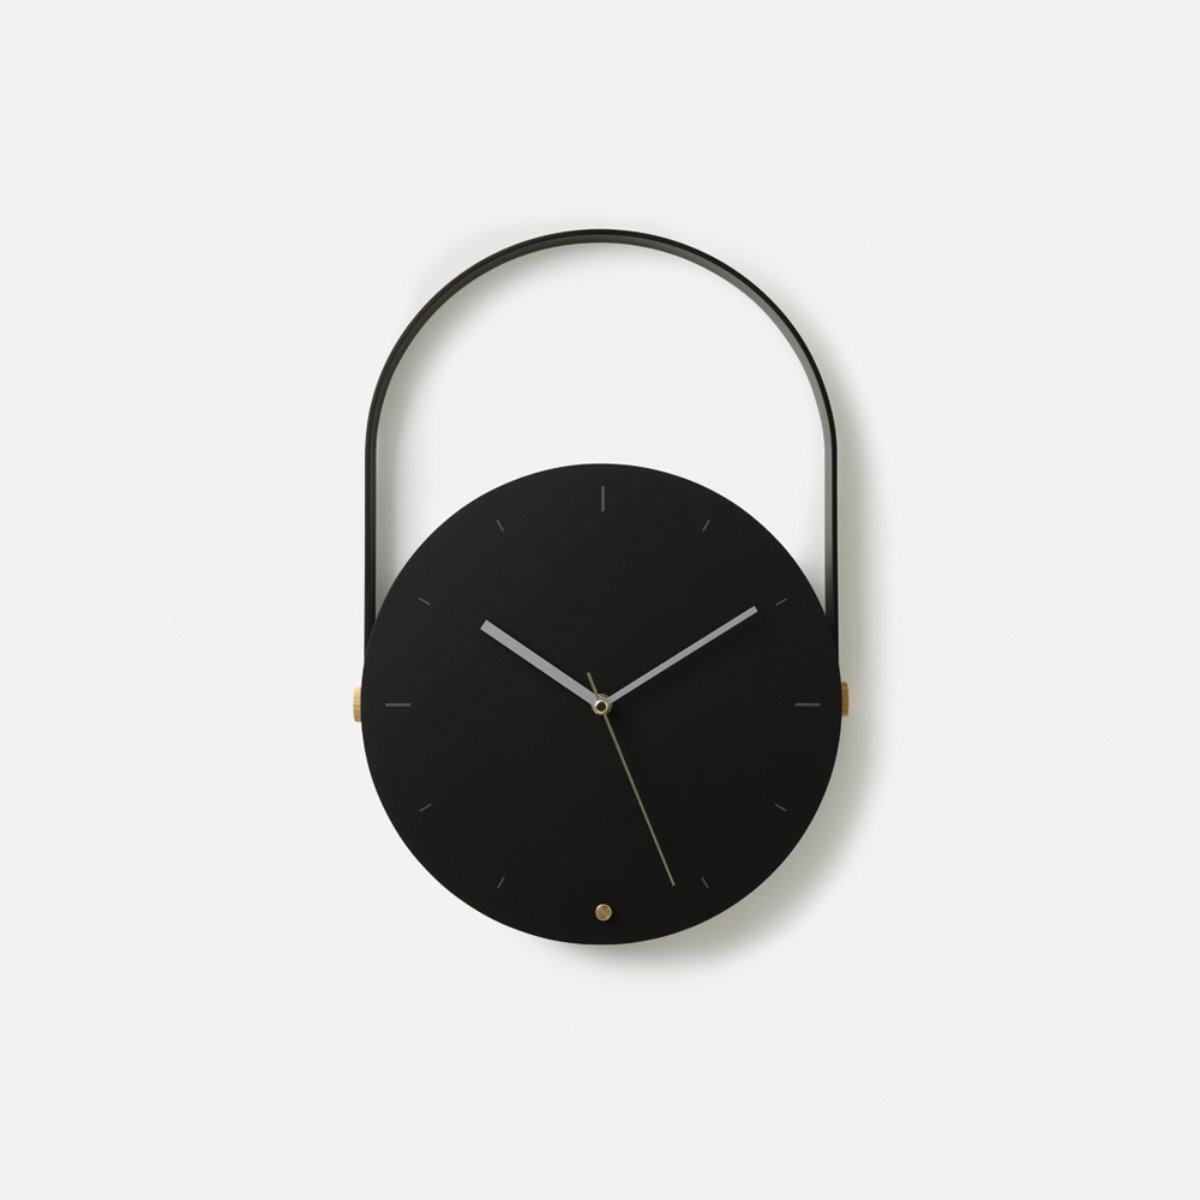 스텔라 벽시계 Stella wall clock_black